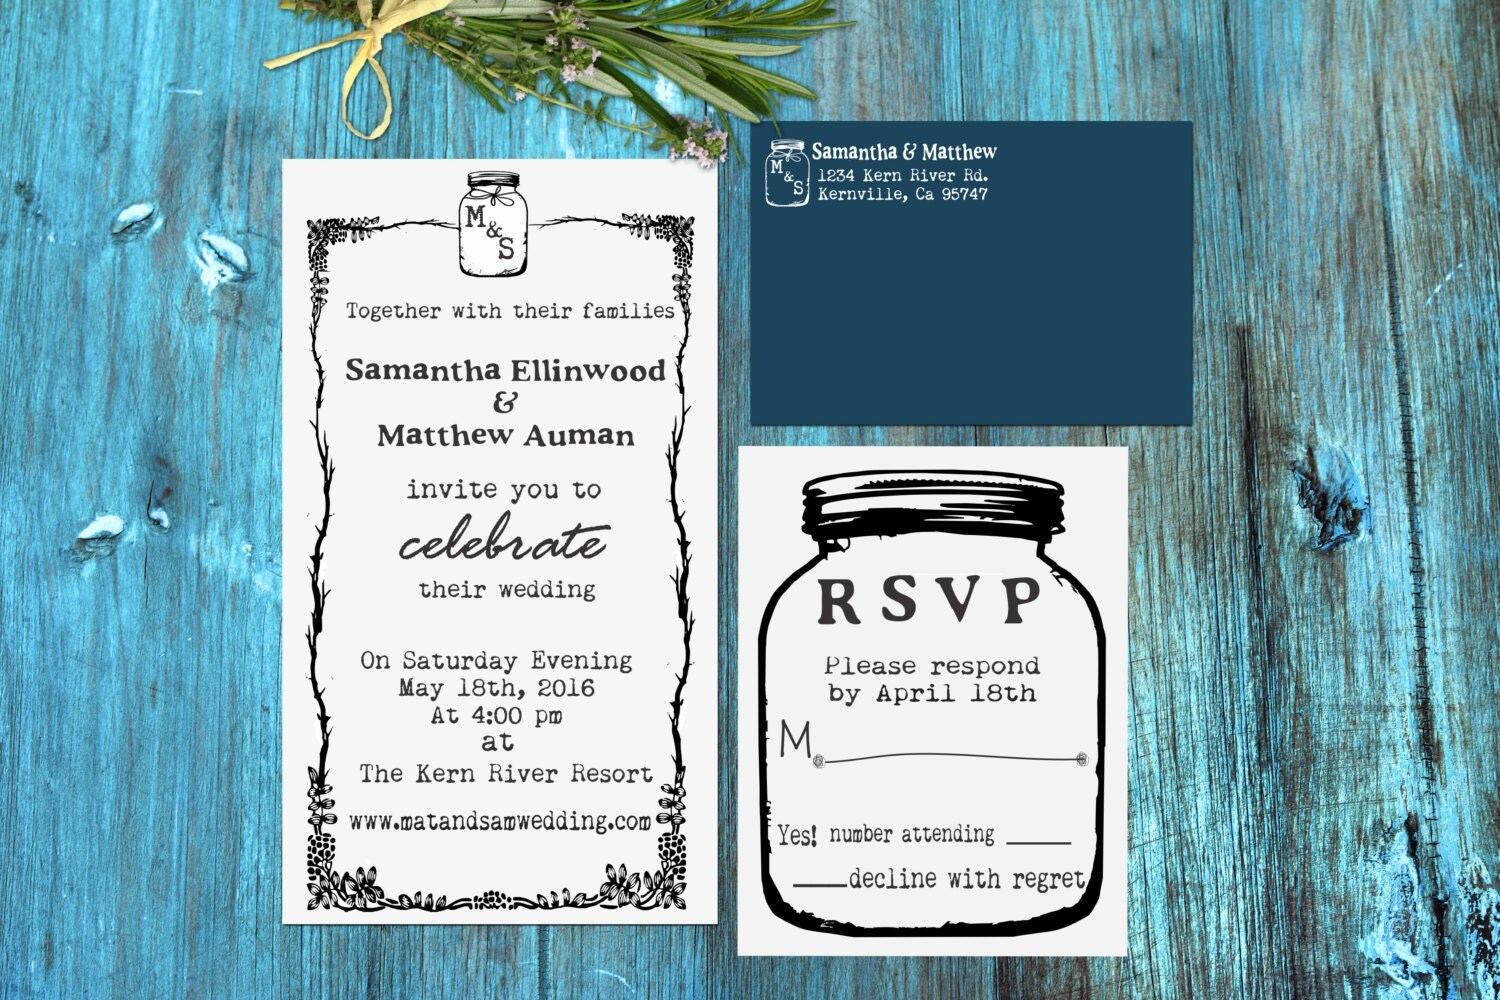 Personalized Rubber Stamps For Wedding Invitations: Mason Jar Wedding Invitation Rubber Stamp SET With Invitation